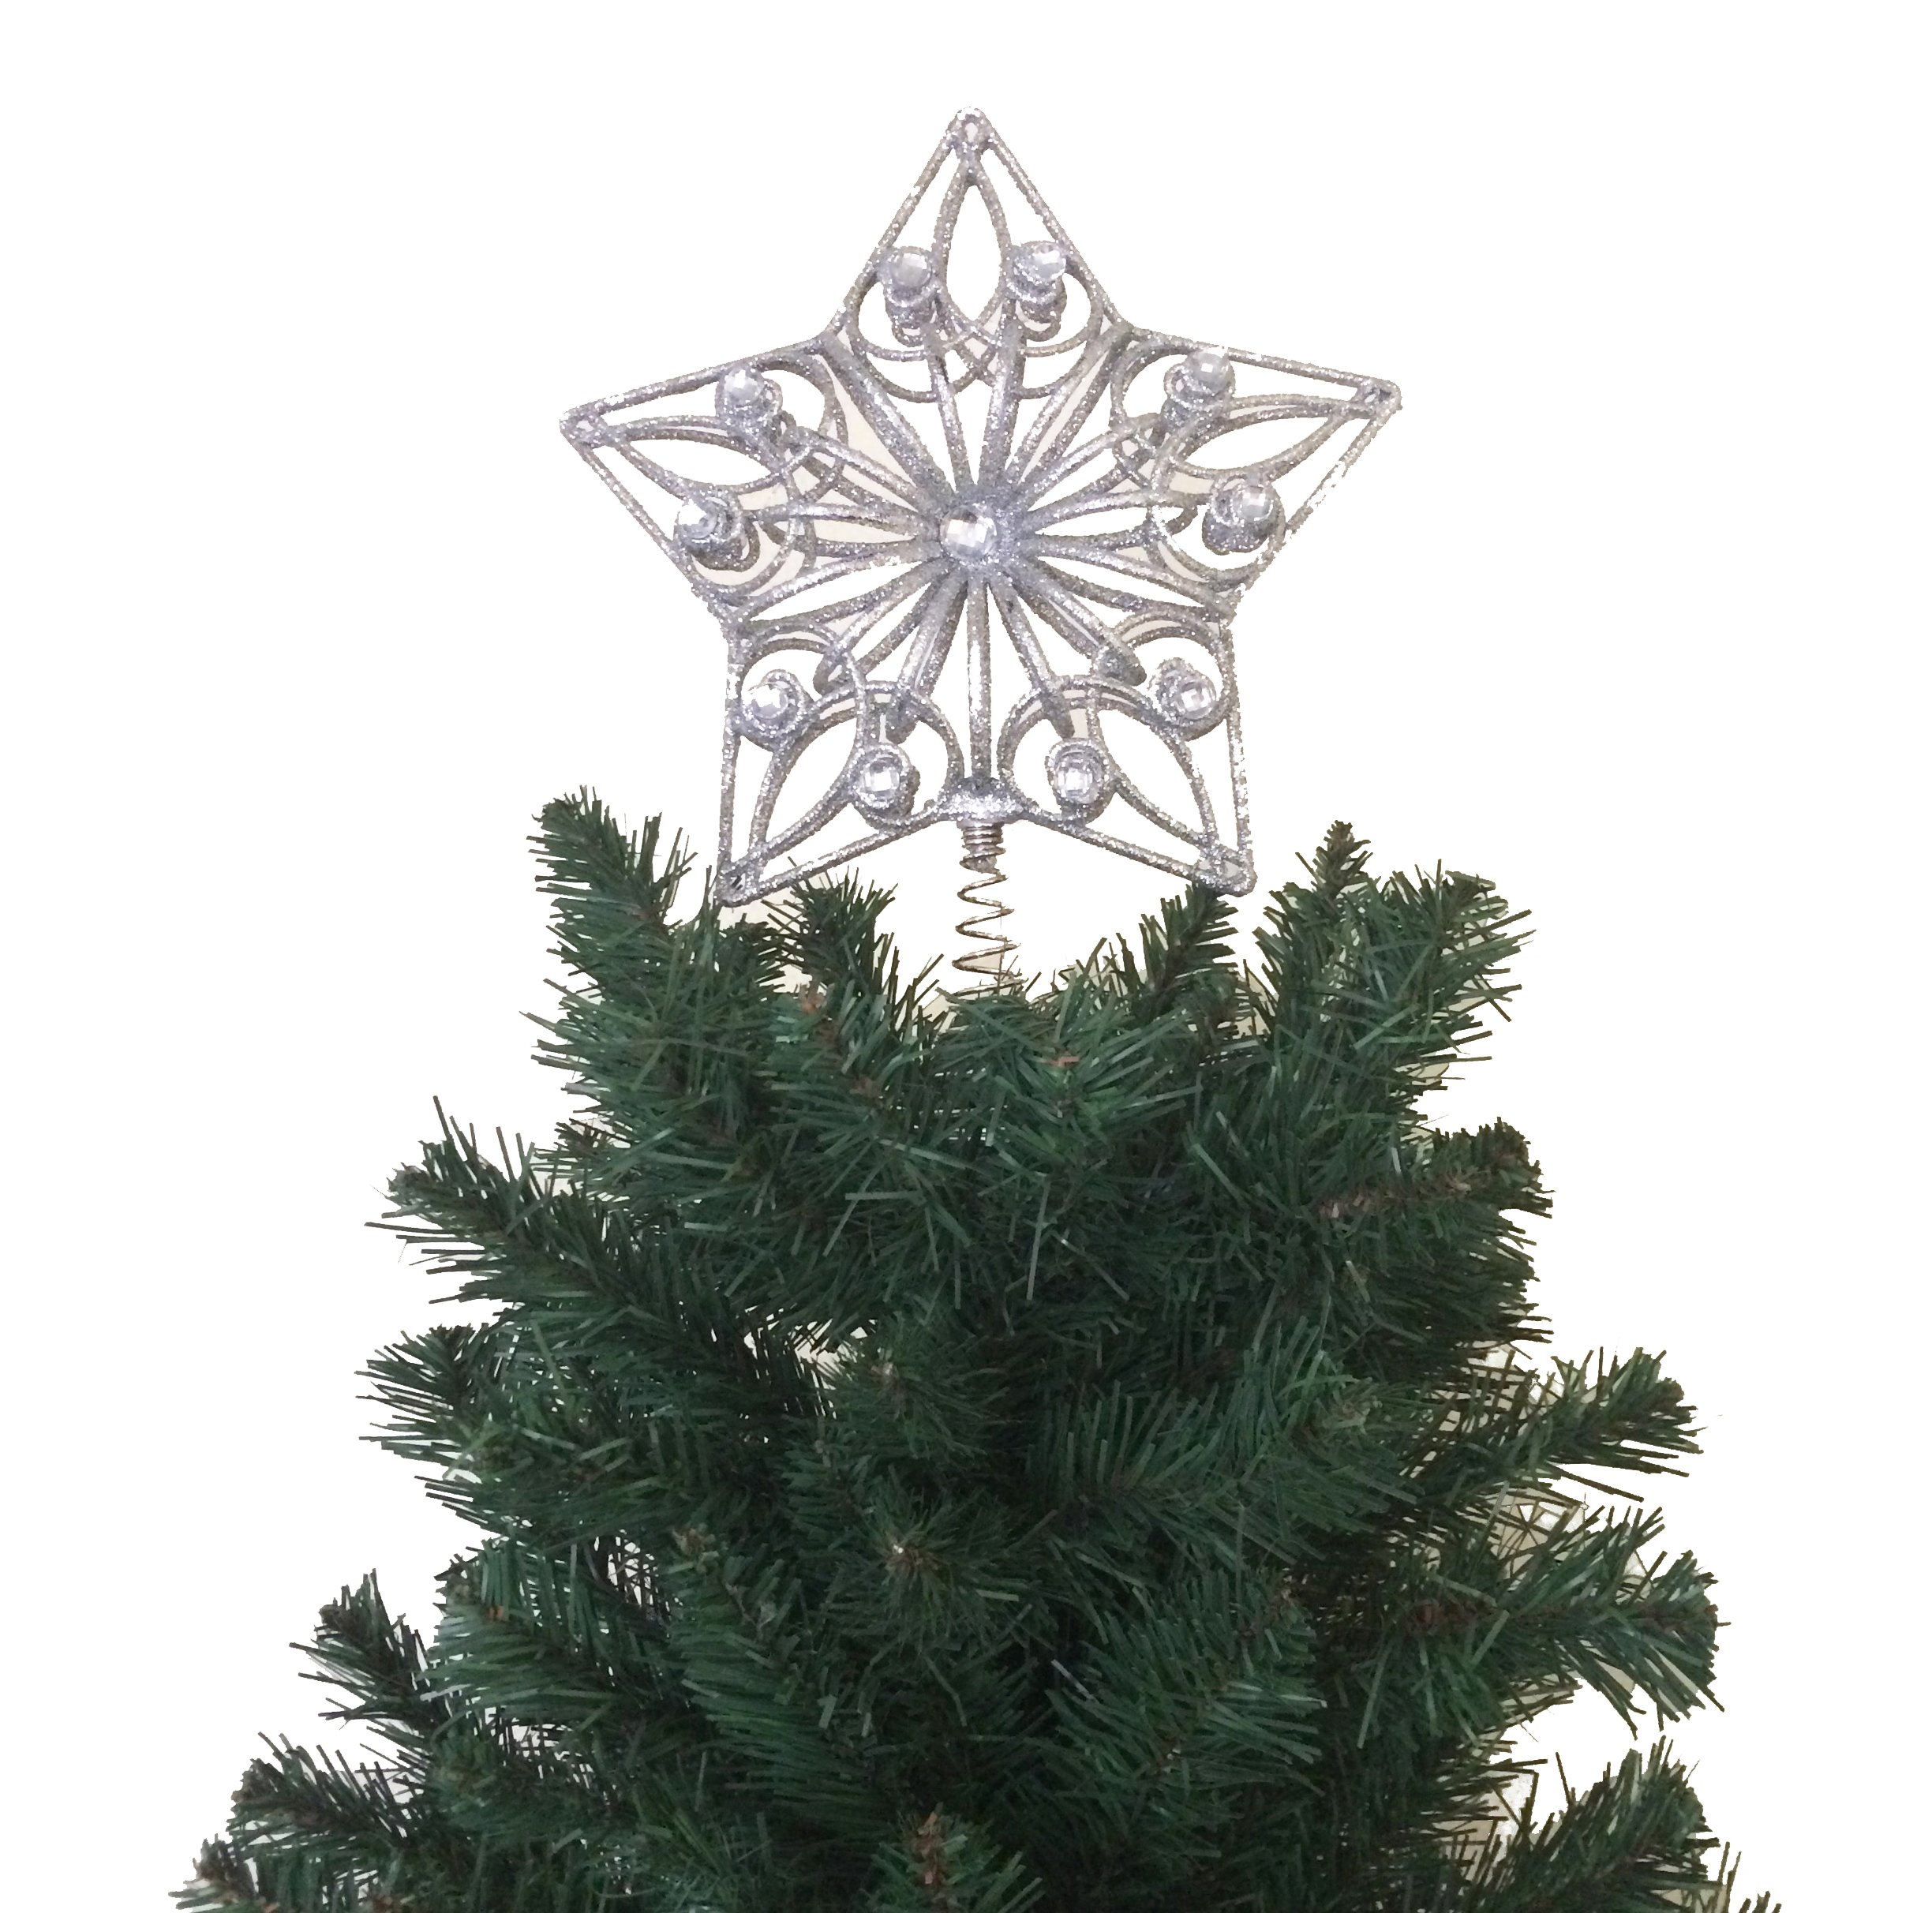 10.5'' H Star Tree Topper With Gem Christmas Tree Decoration - Silver